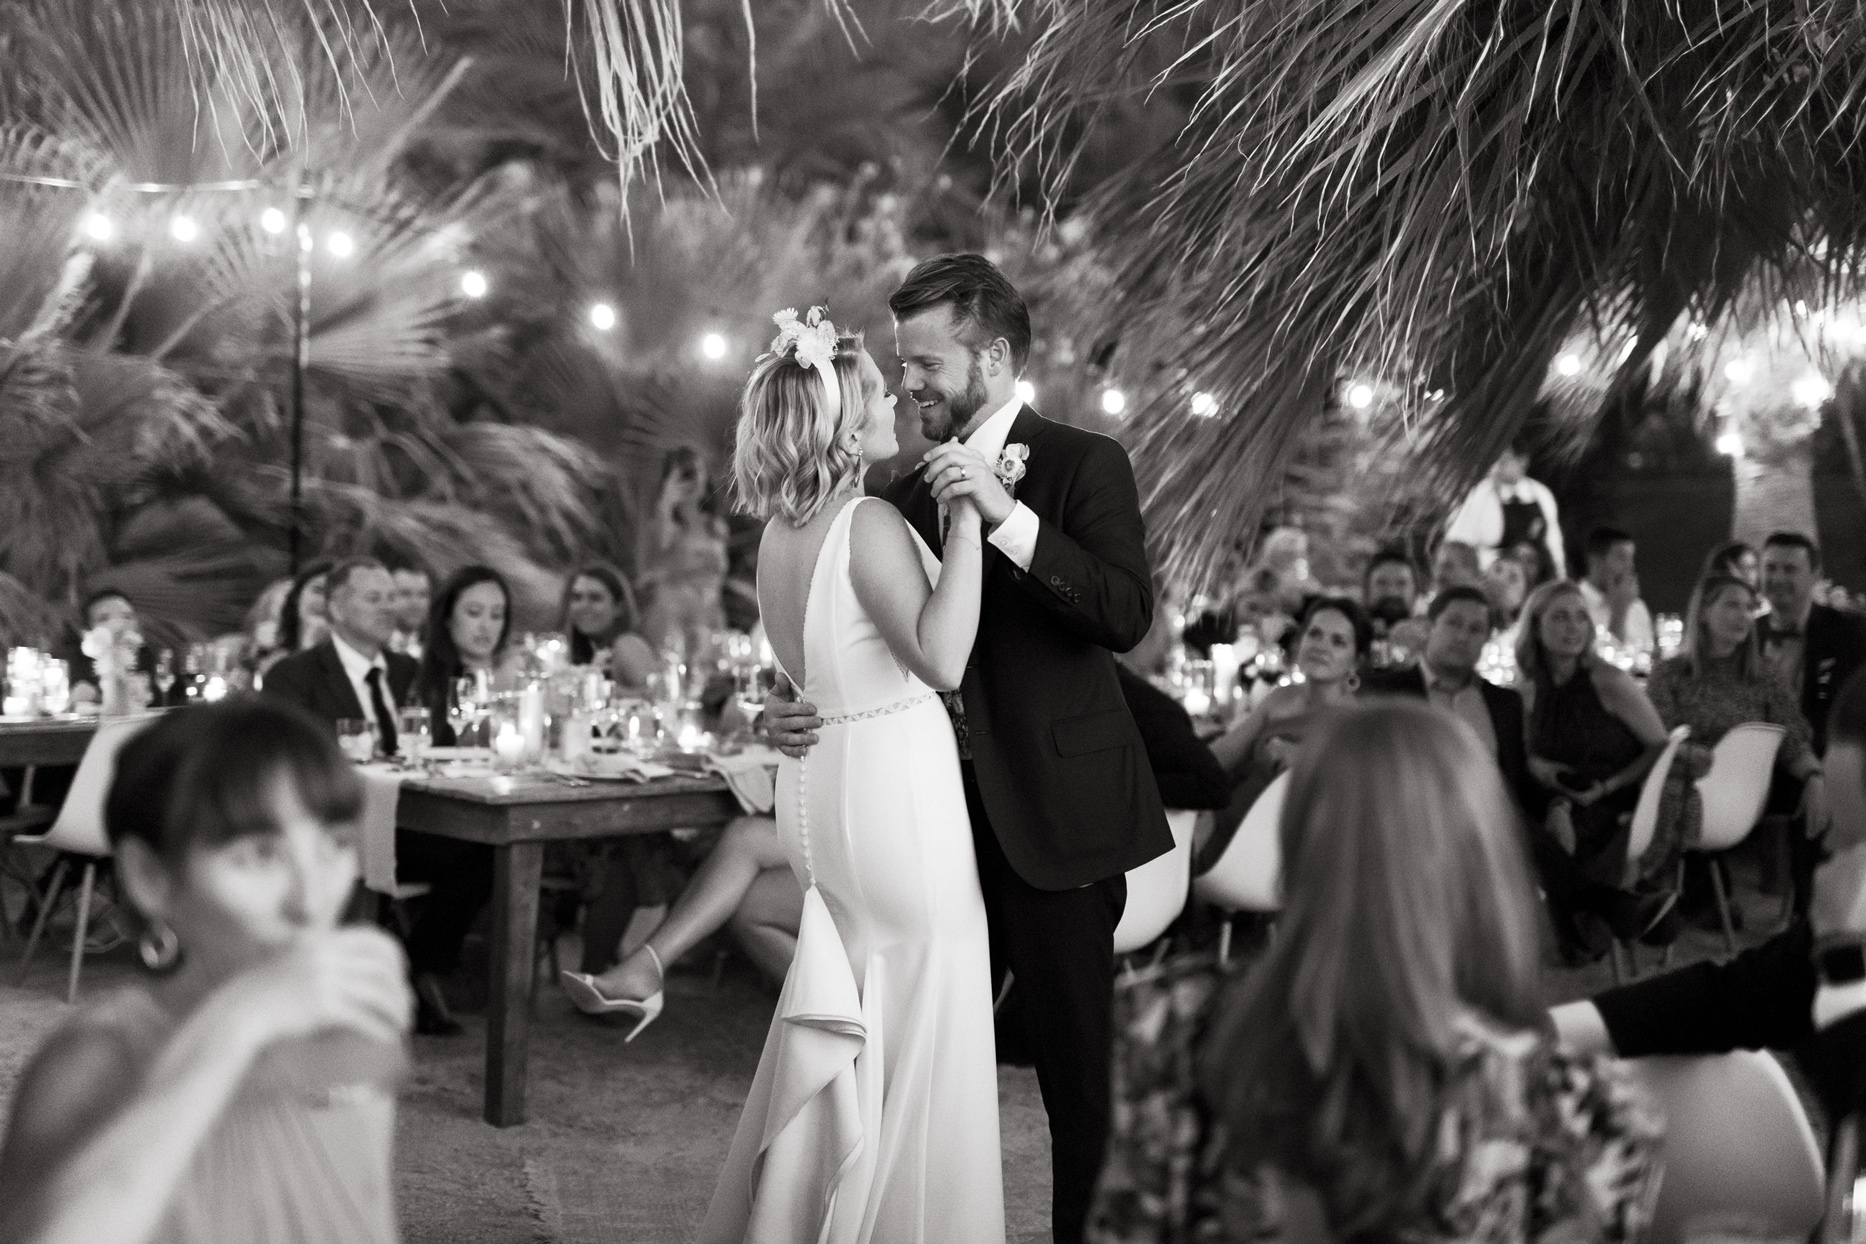 bride and groom sharing first dance beneath palm trees